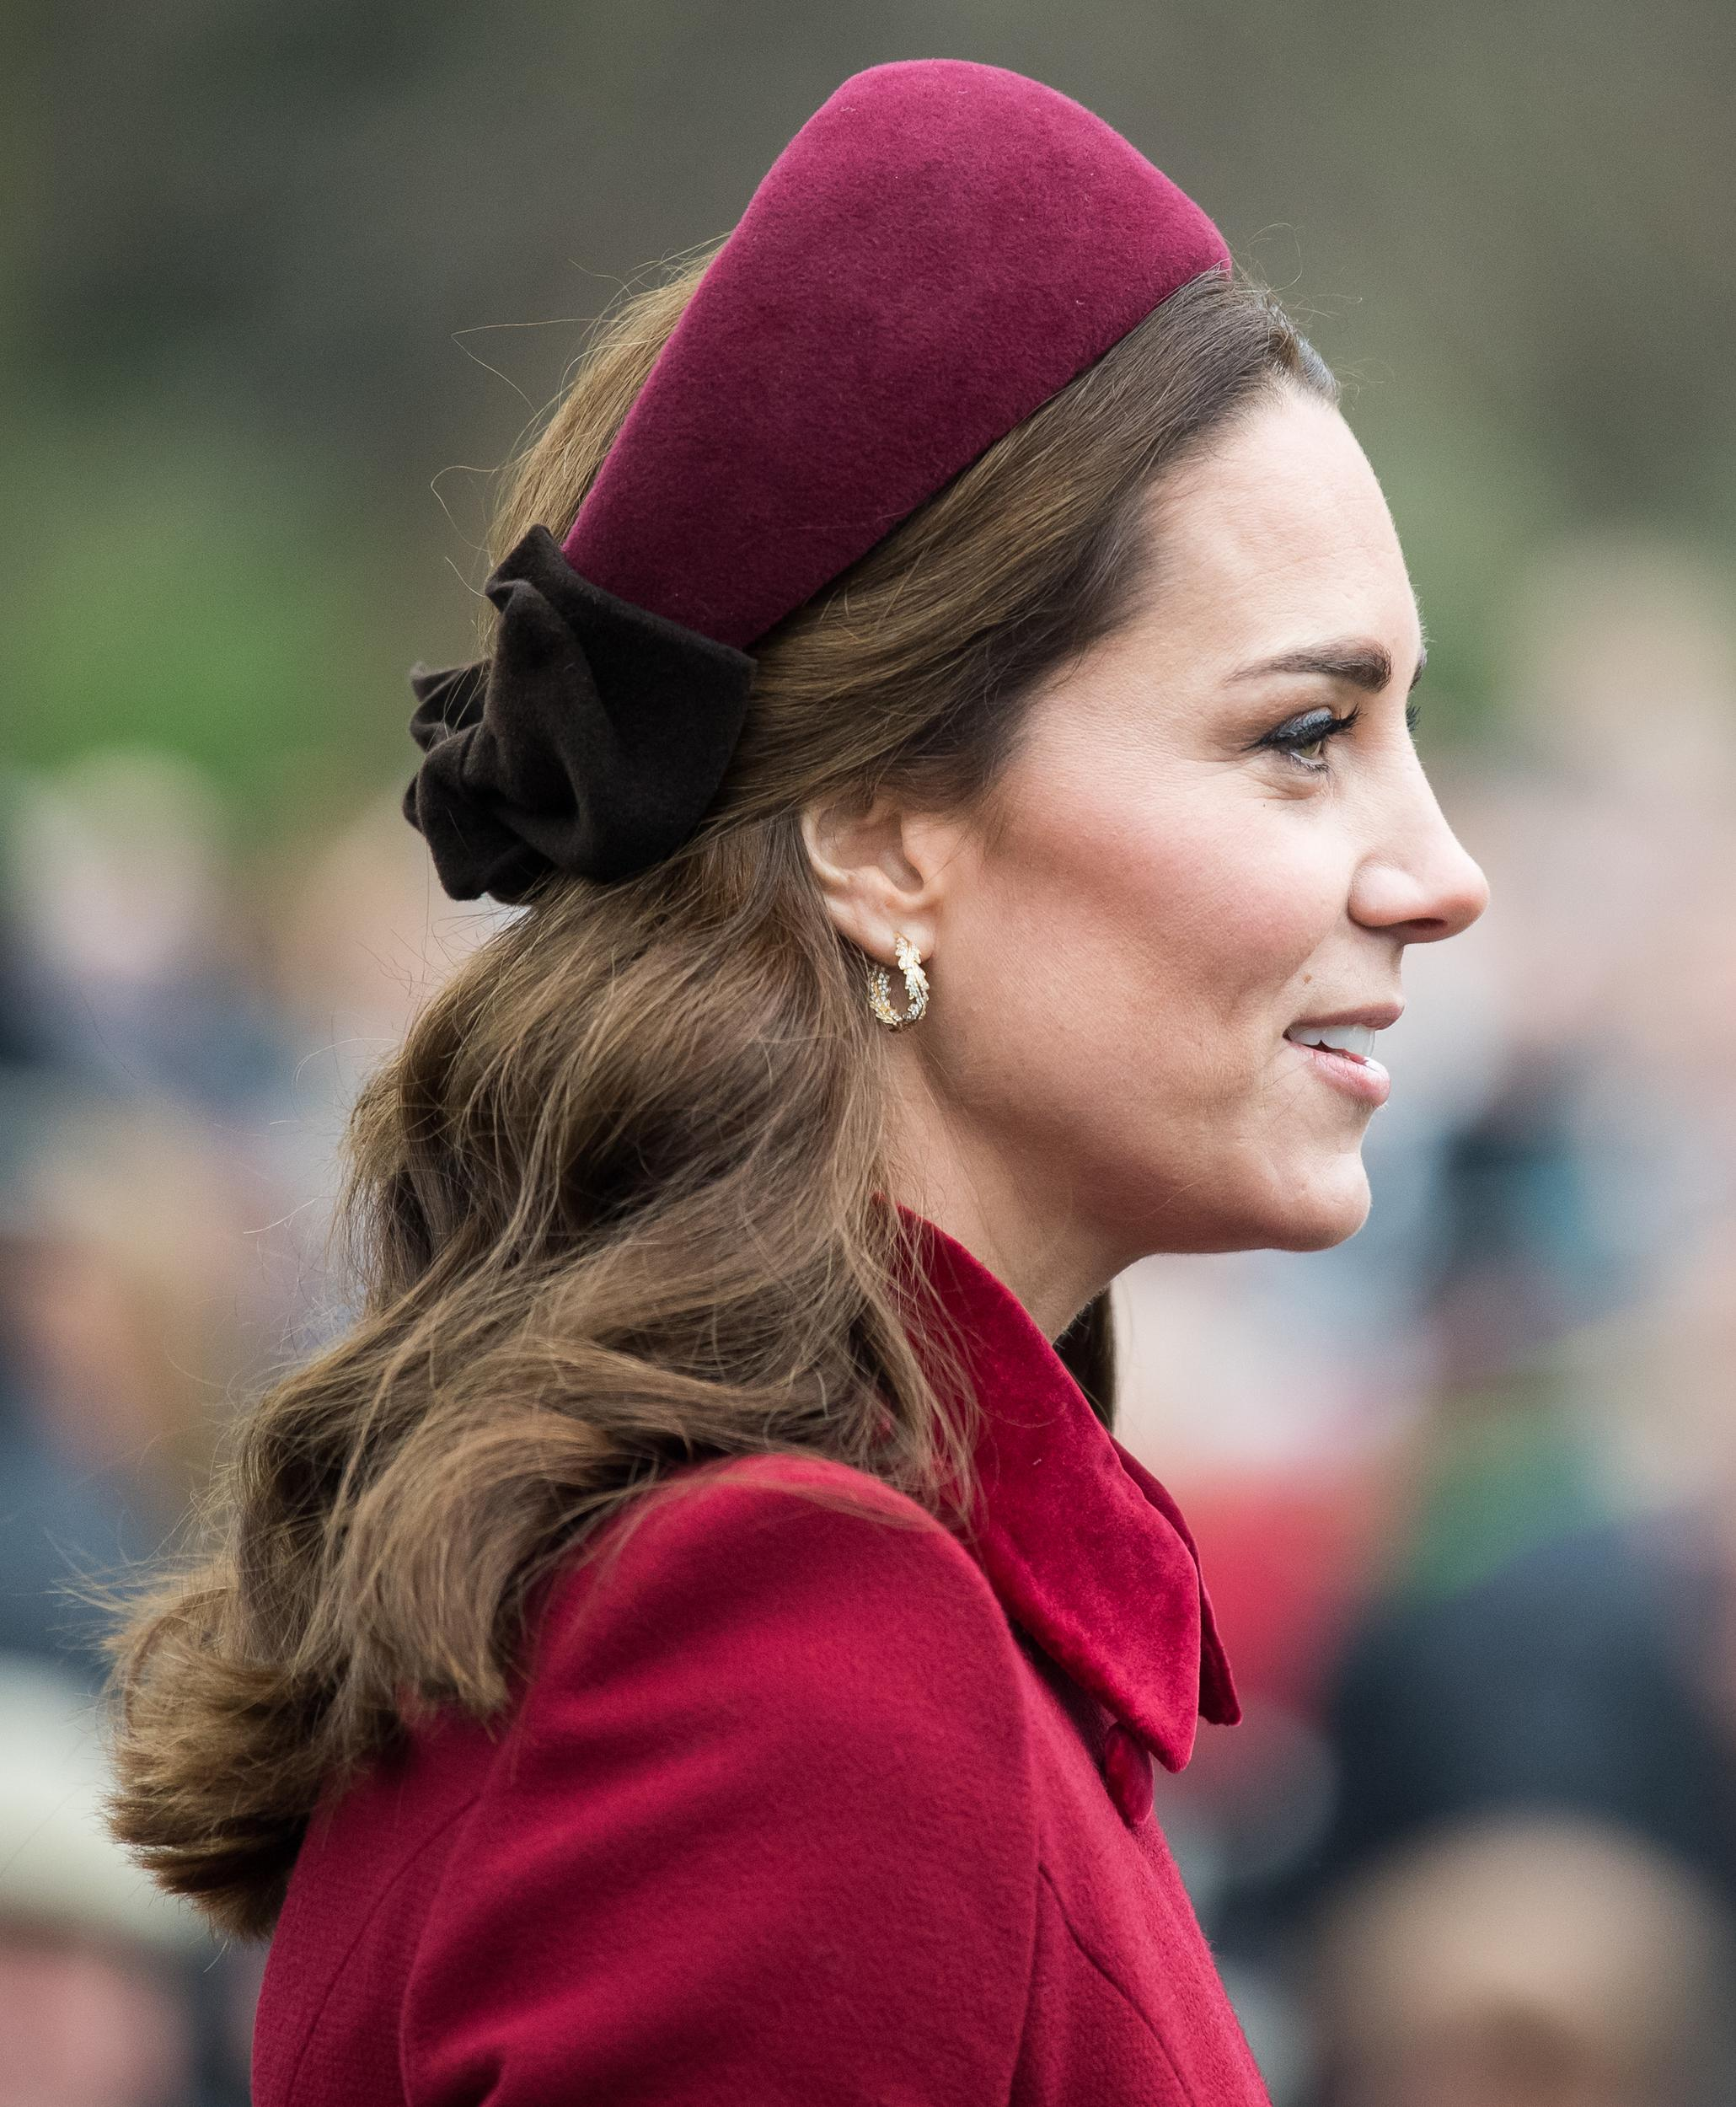 KING'S LYNN, ENGLAND - DECEMBER 25: Catherine, Duchess of Cambridge attends Christmas Day Church service at Church of St Mary Magdalene on the Sandringham estate on December 25, 2018 in King's Lynn, England. (Photo by Samir Hussein/Samir Hussein/WireImage)